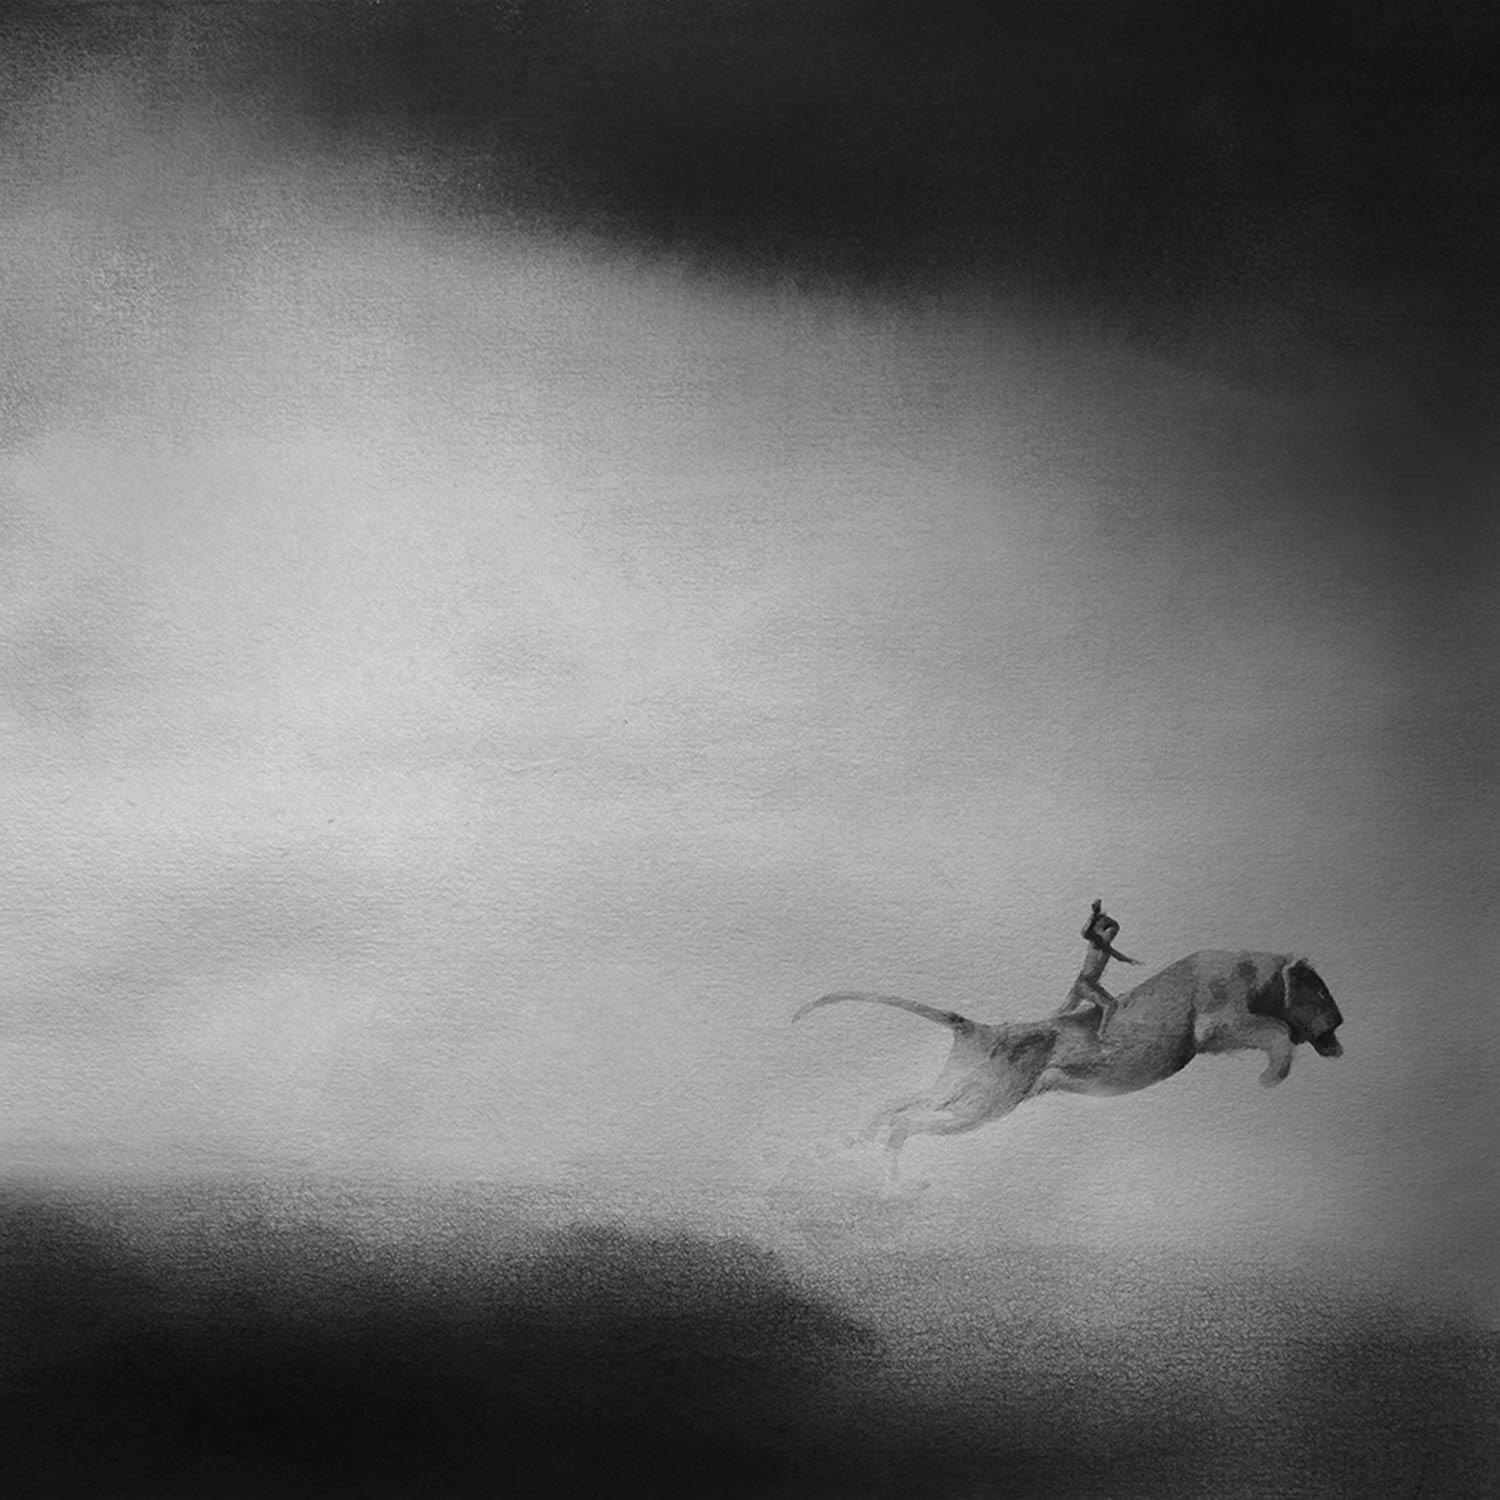 animal jumping, painting, monochromatic